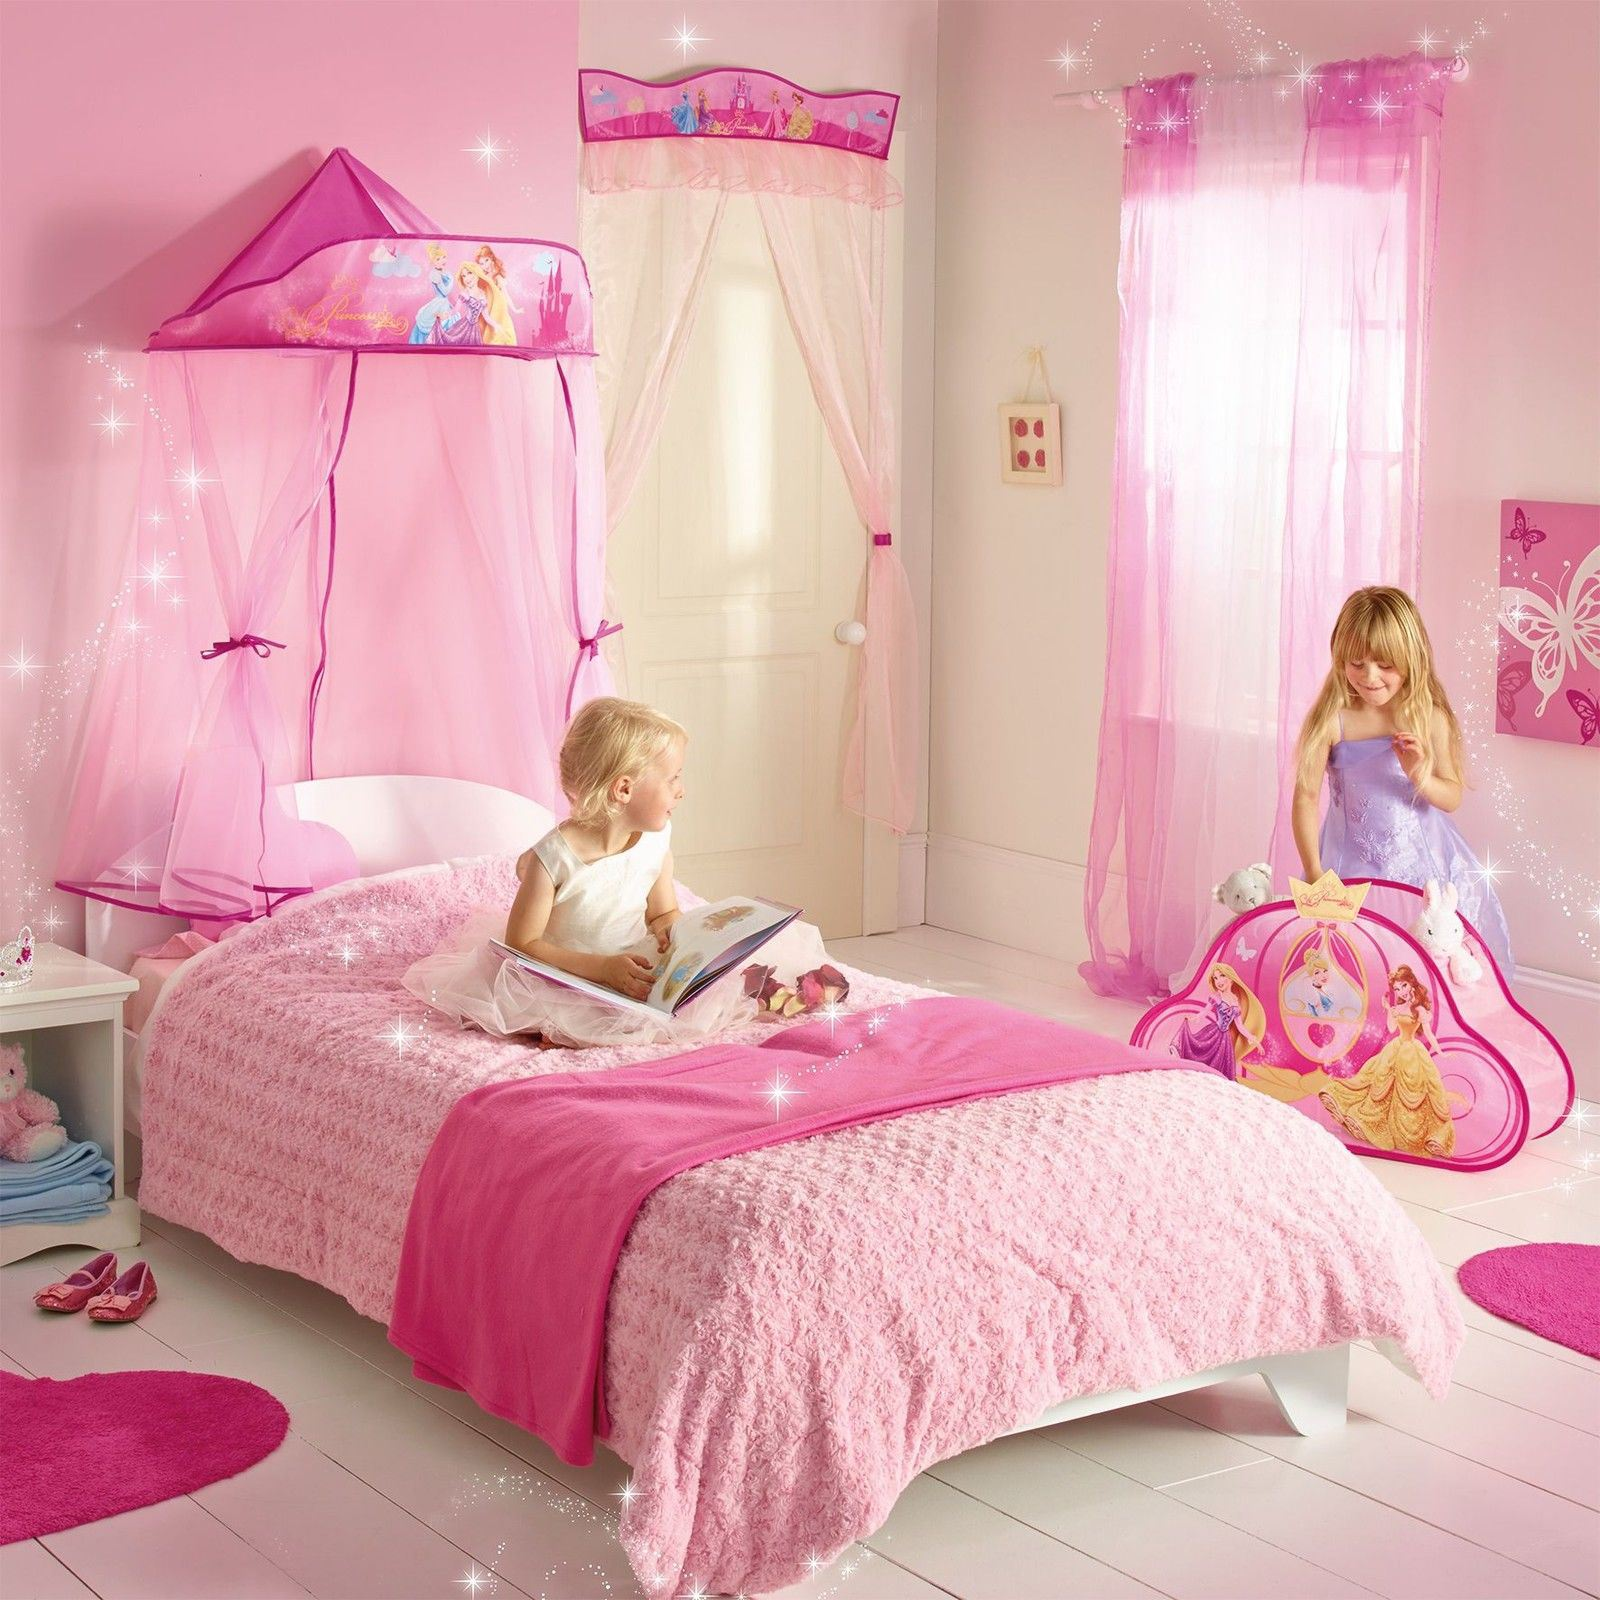 Decorate room games barbie for All barbie house decoration games